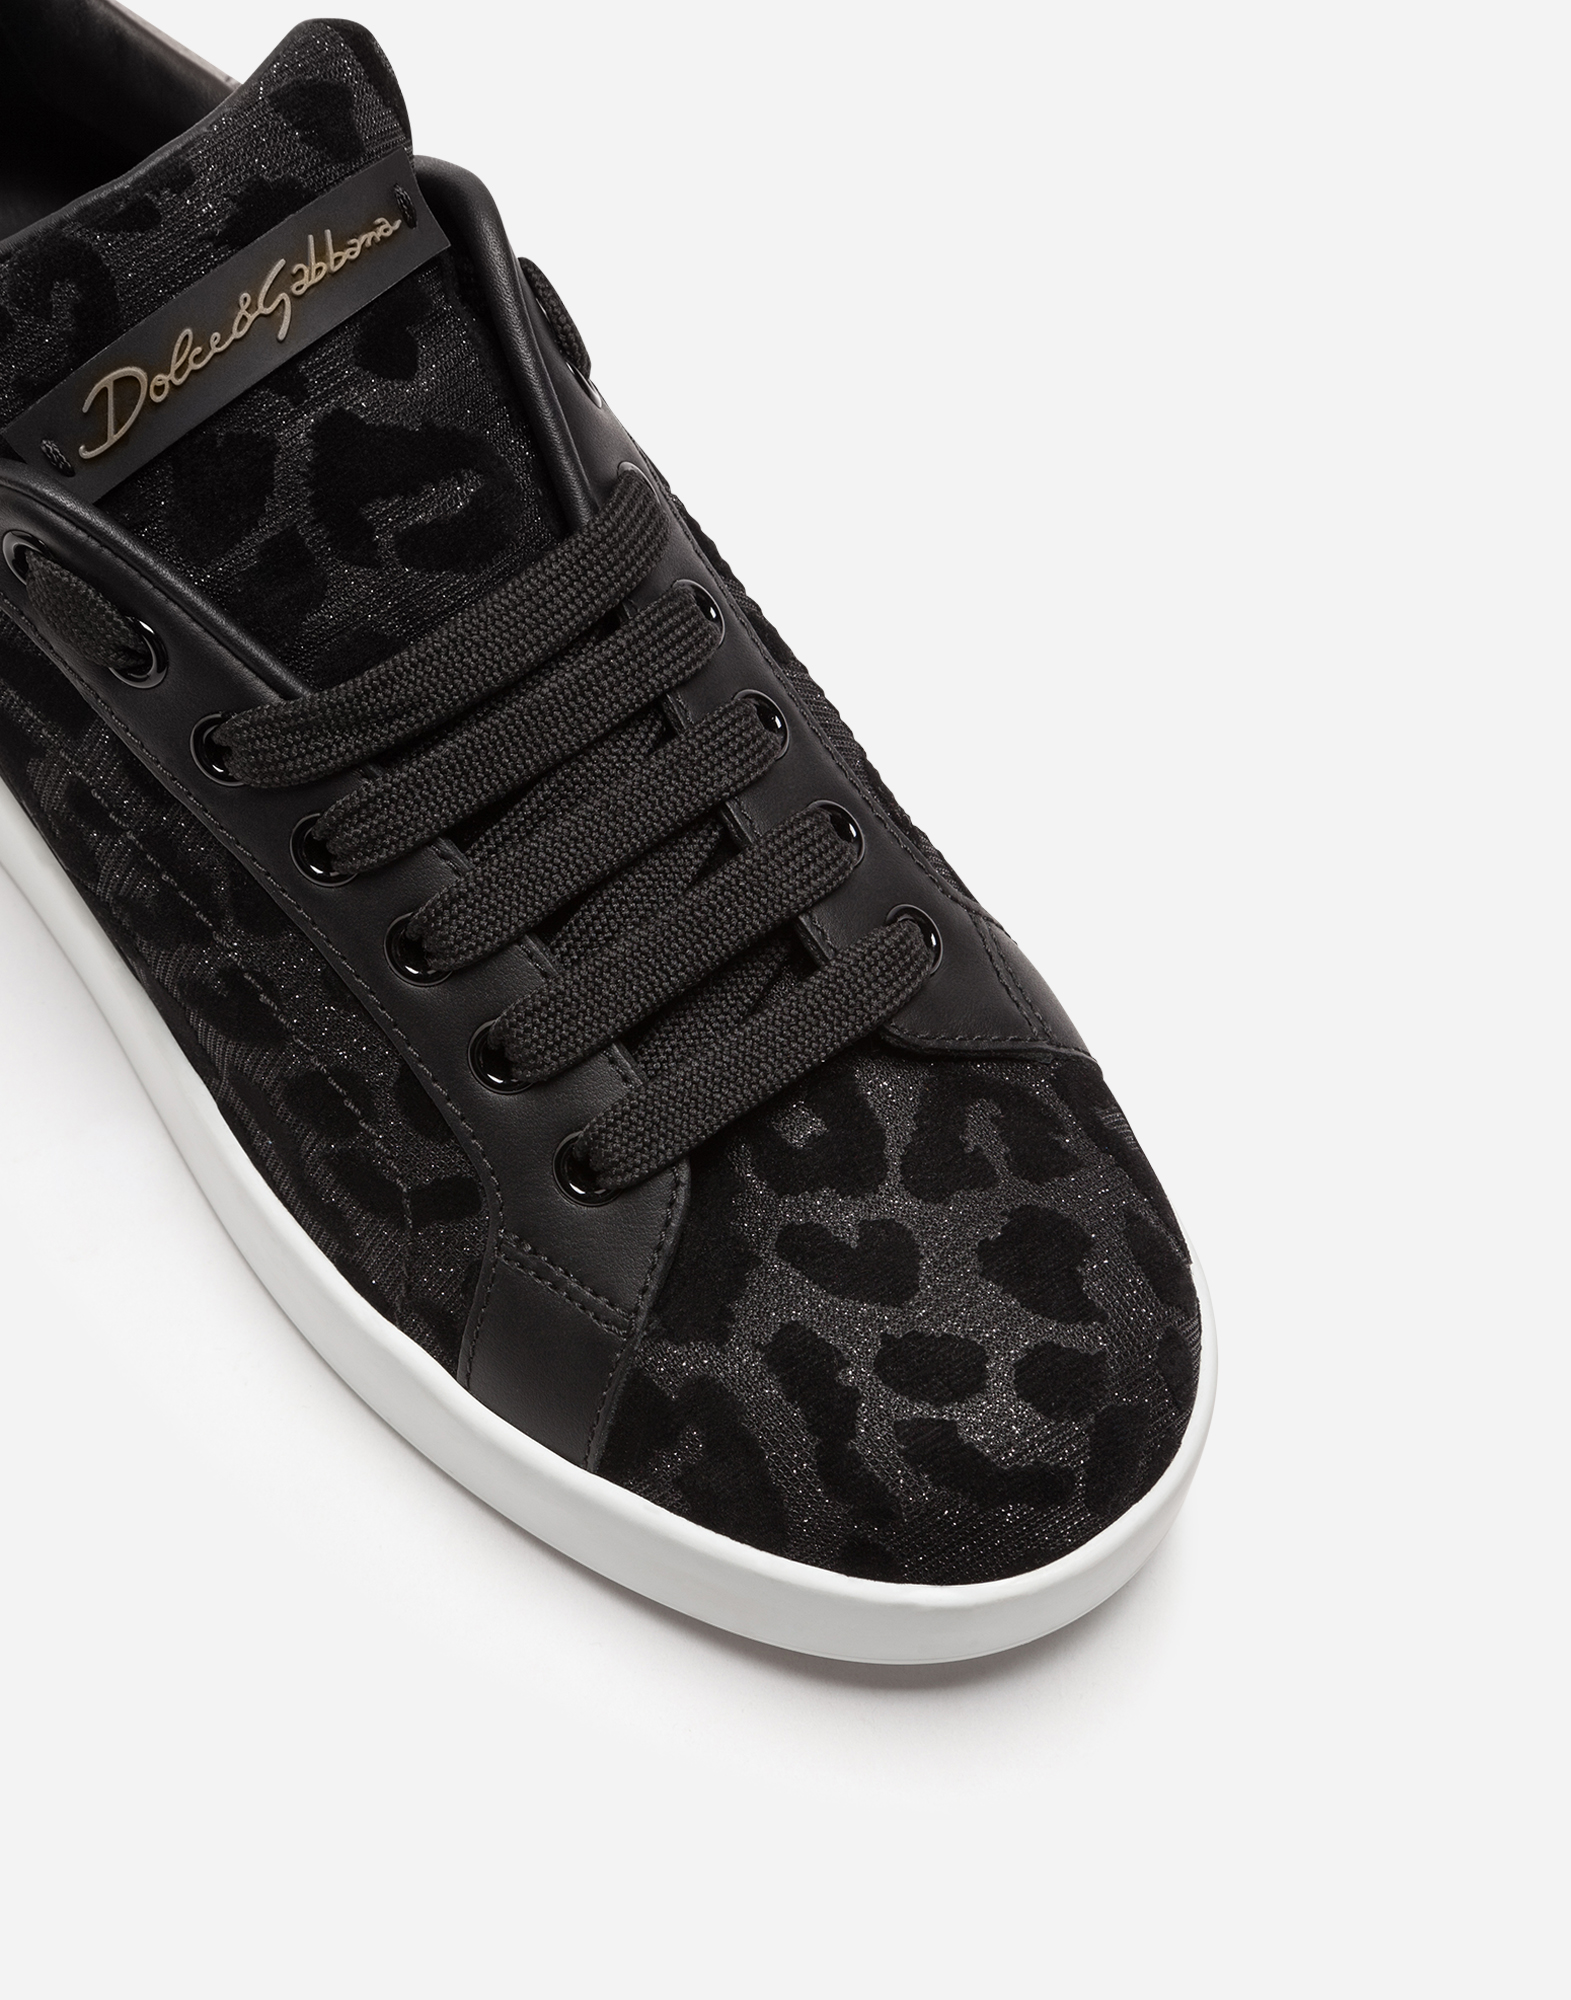 PORTOFINO SNEAKERS IN COLOR-CHANGING LEOPARD FABRIC